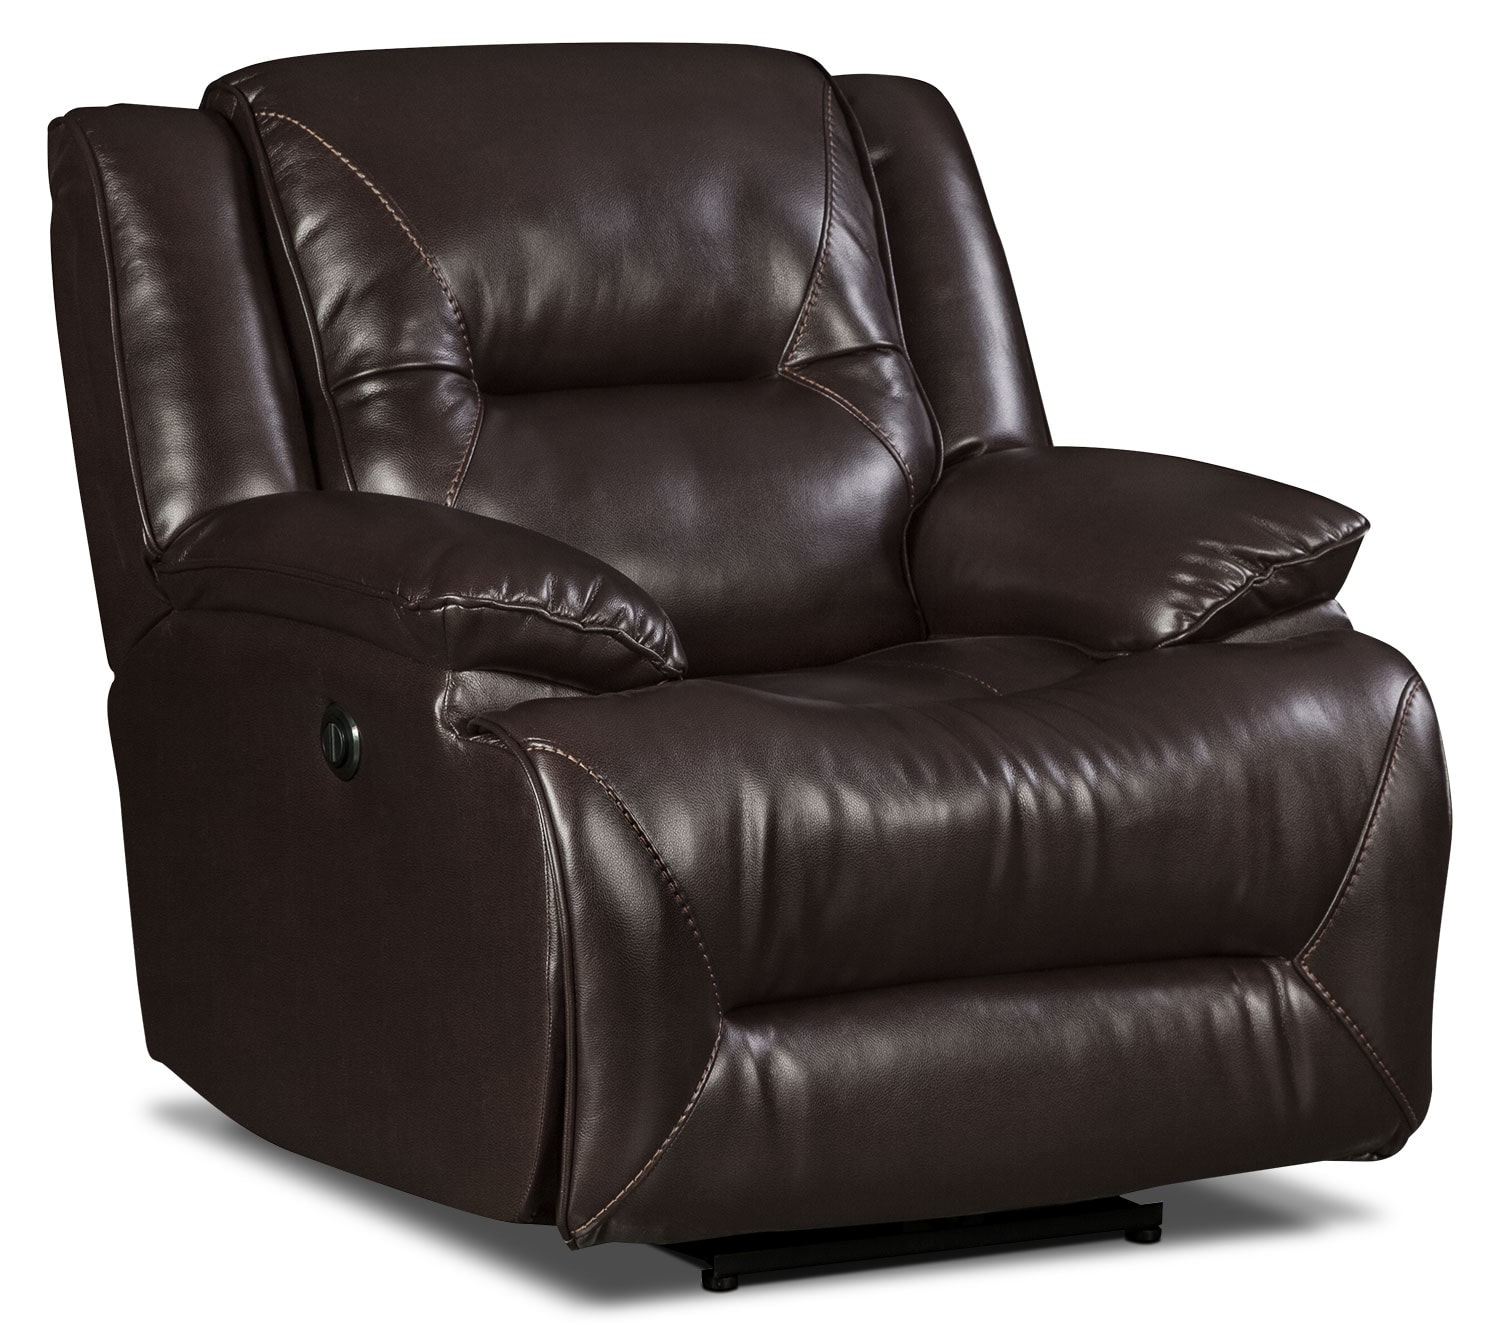 Power Reclining Chairs Lancer Leather Look Fabric Power Reclining Chair Brown